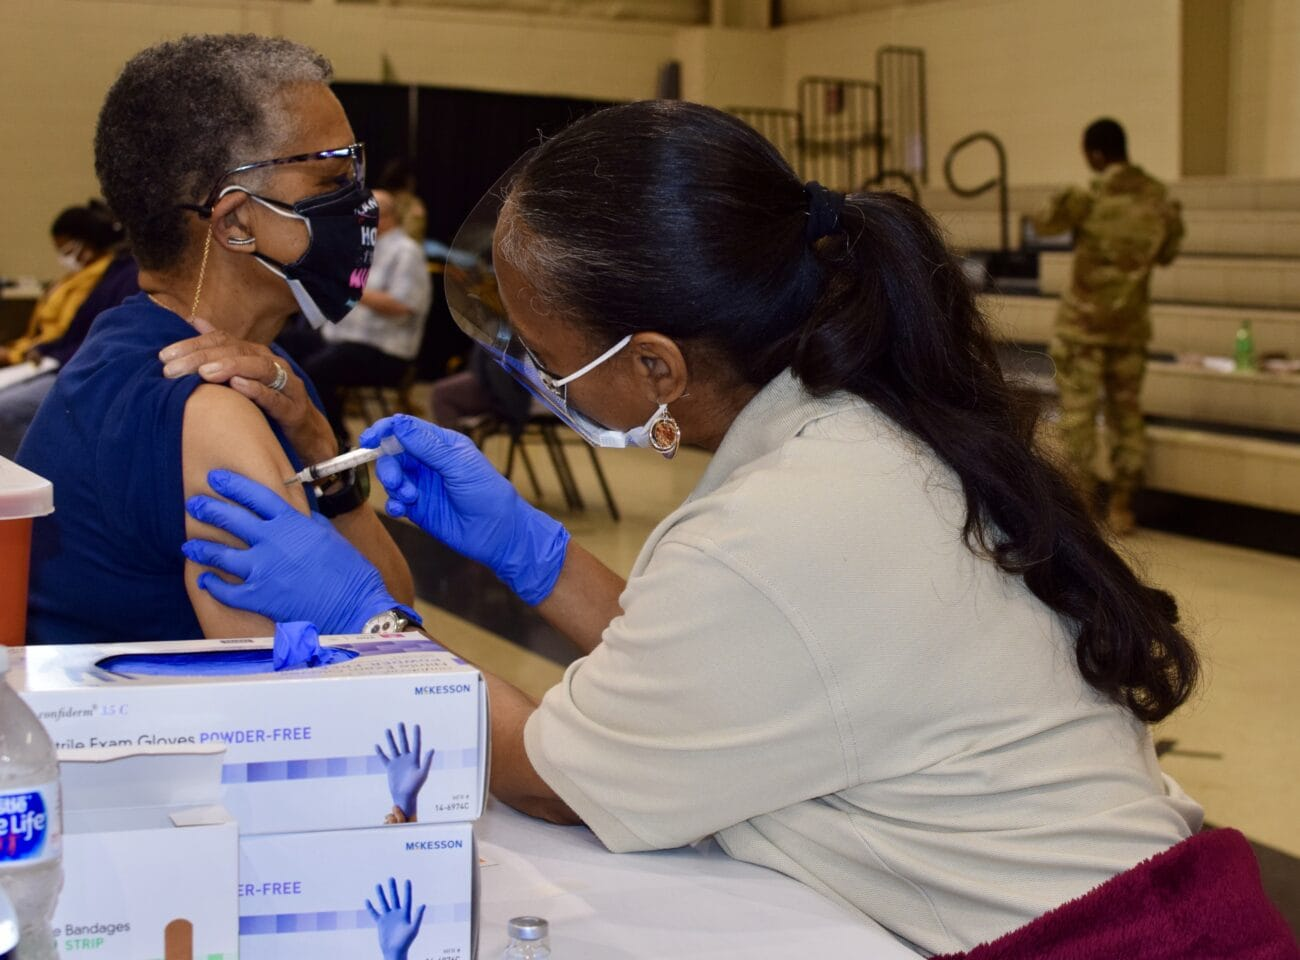 Woman receives first dose of covid vaccine